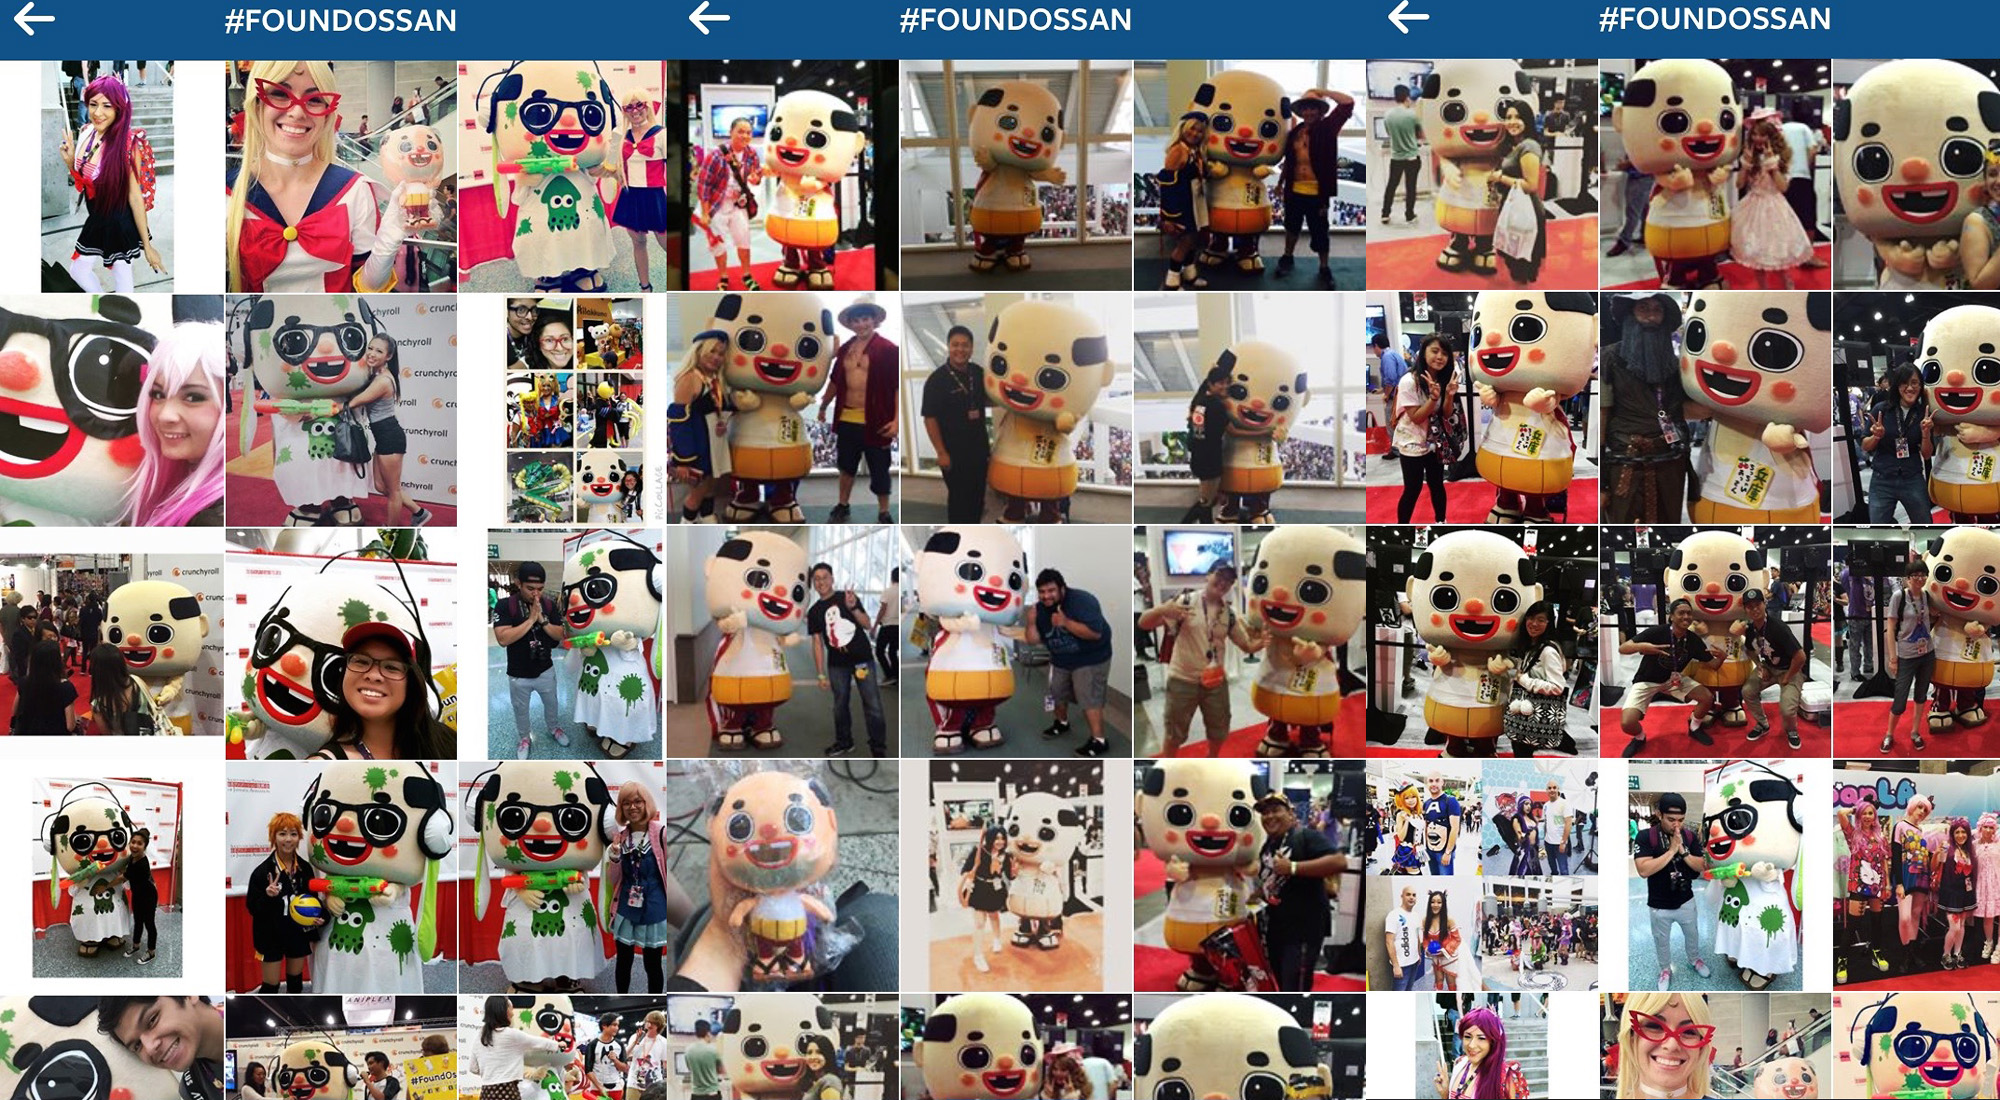 Japanese Mascot Ossan Charms Fans at Anime Expo